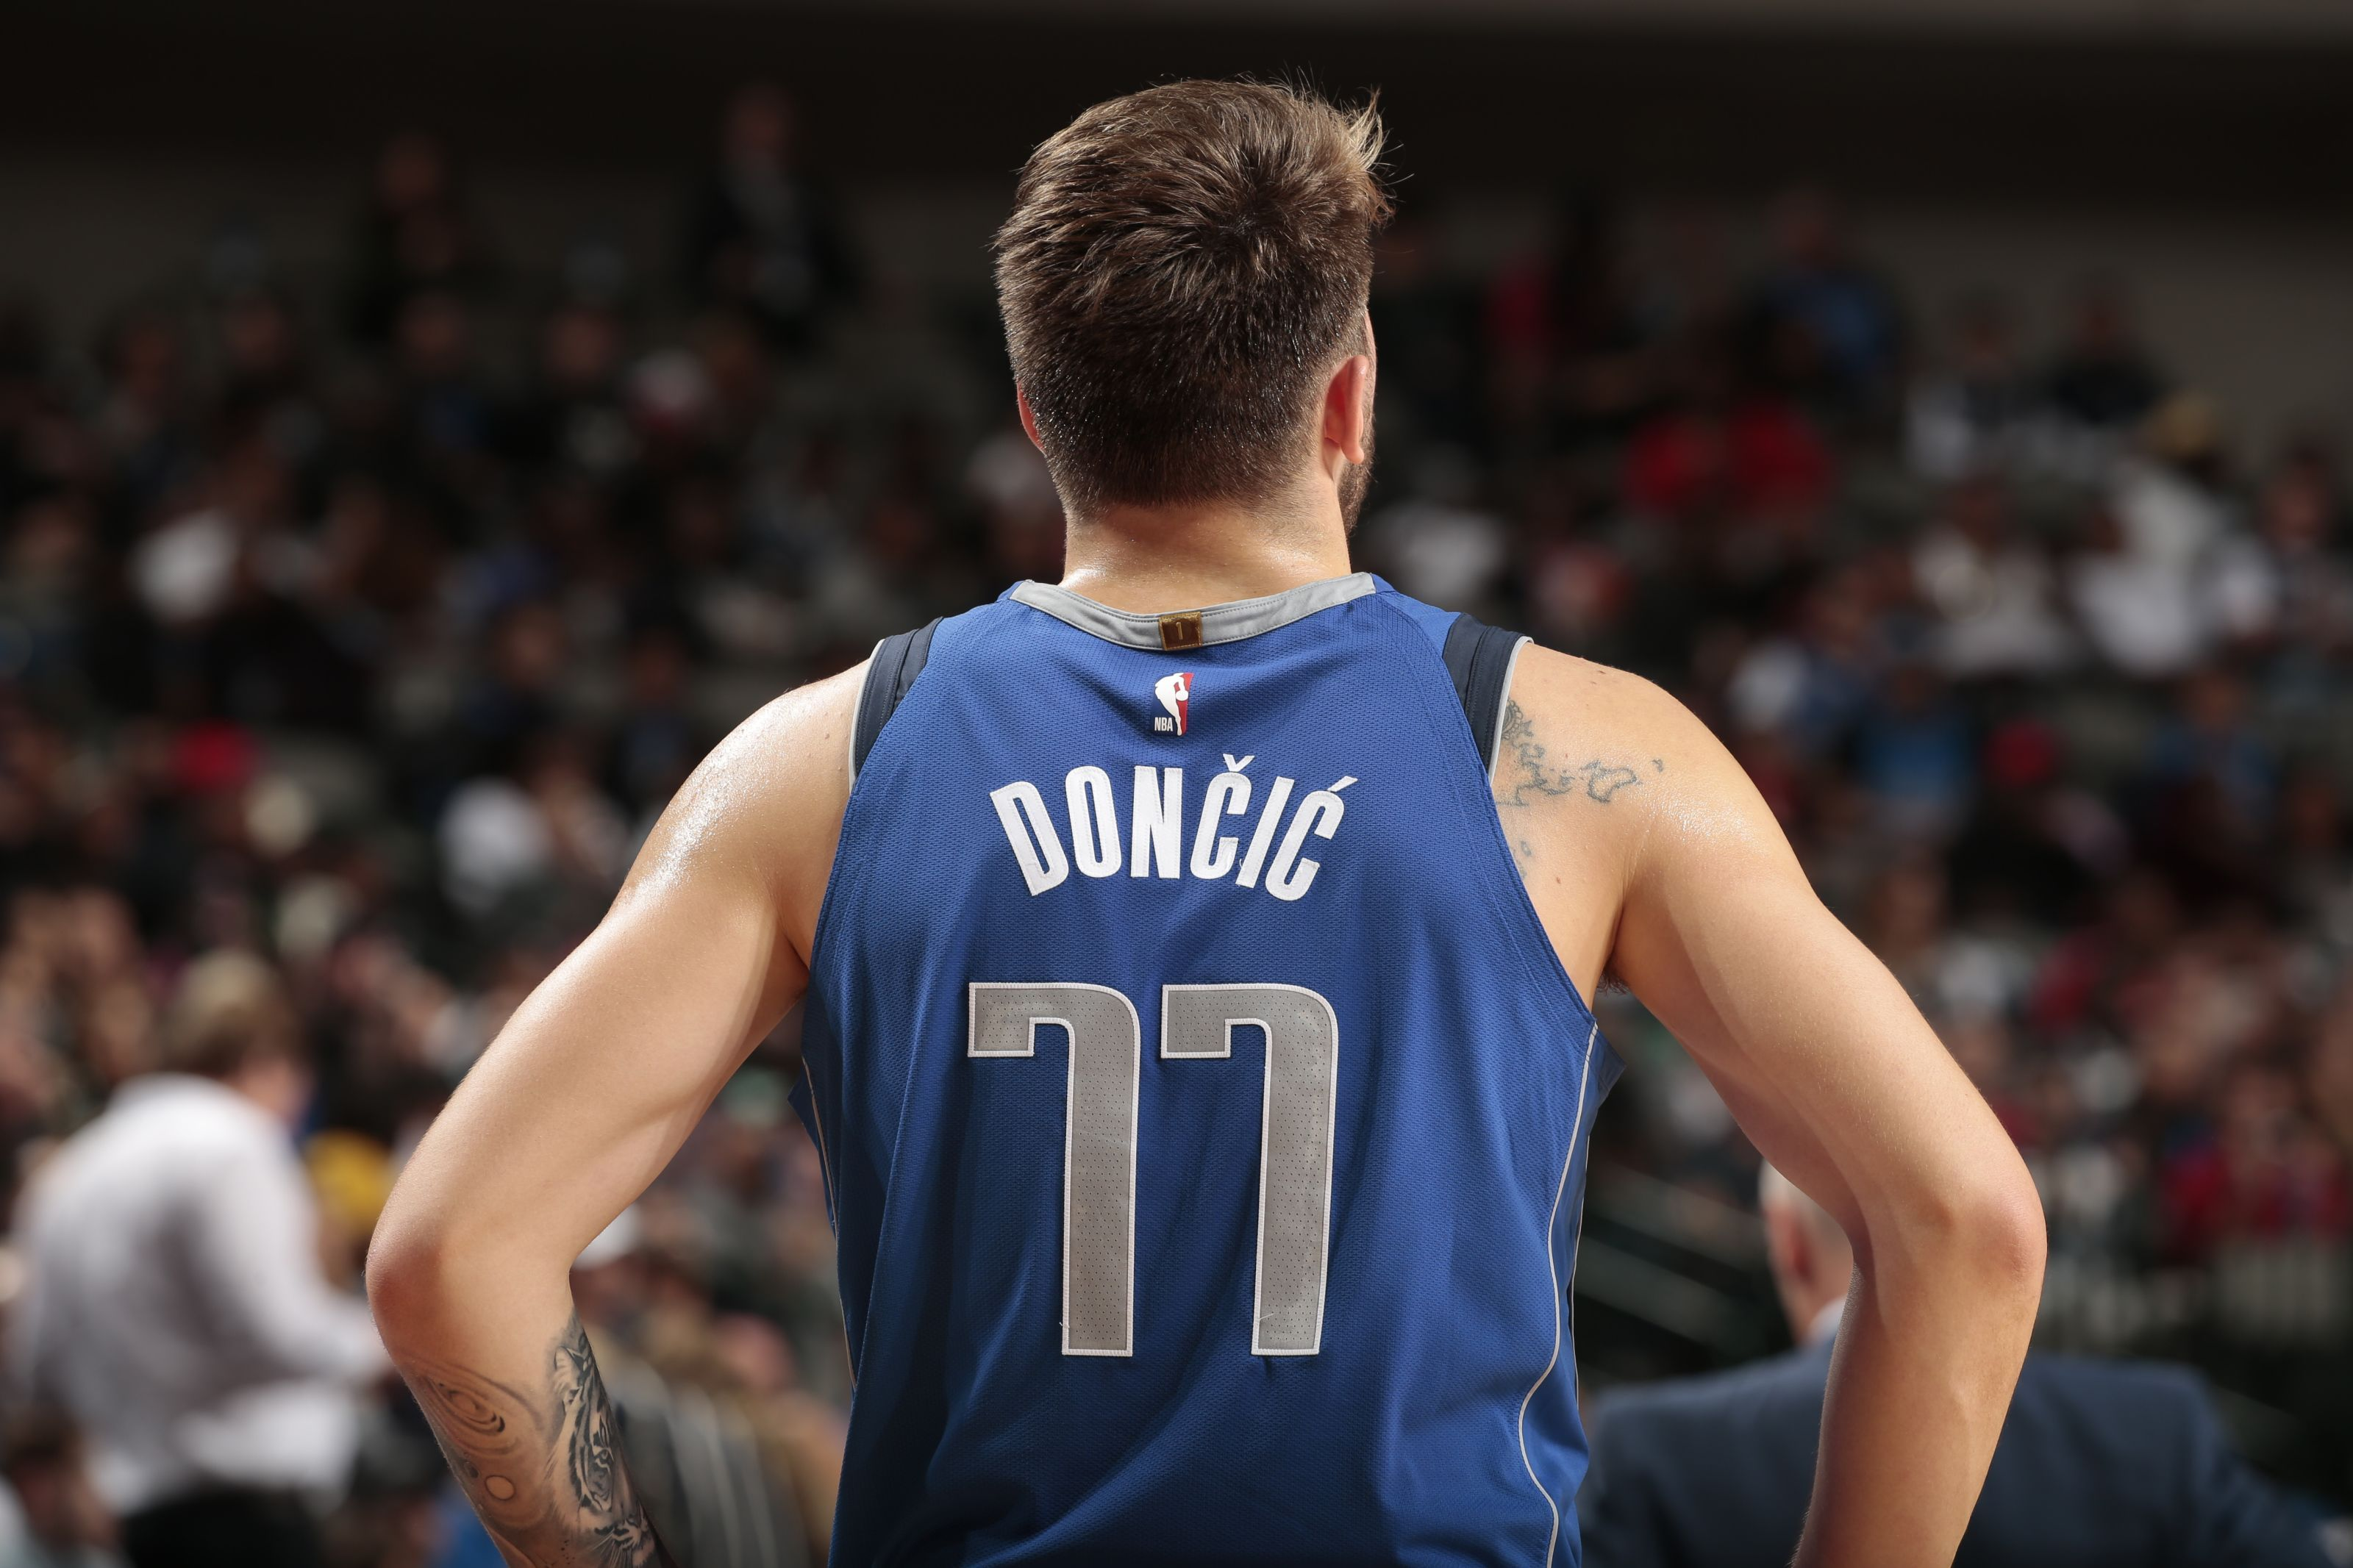 Luka Doncic Wallpapers - Top Free Luka Doncic Backgrounds ...